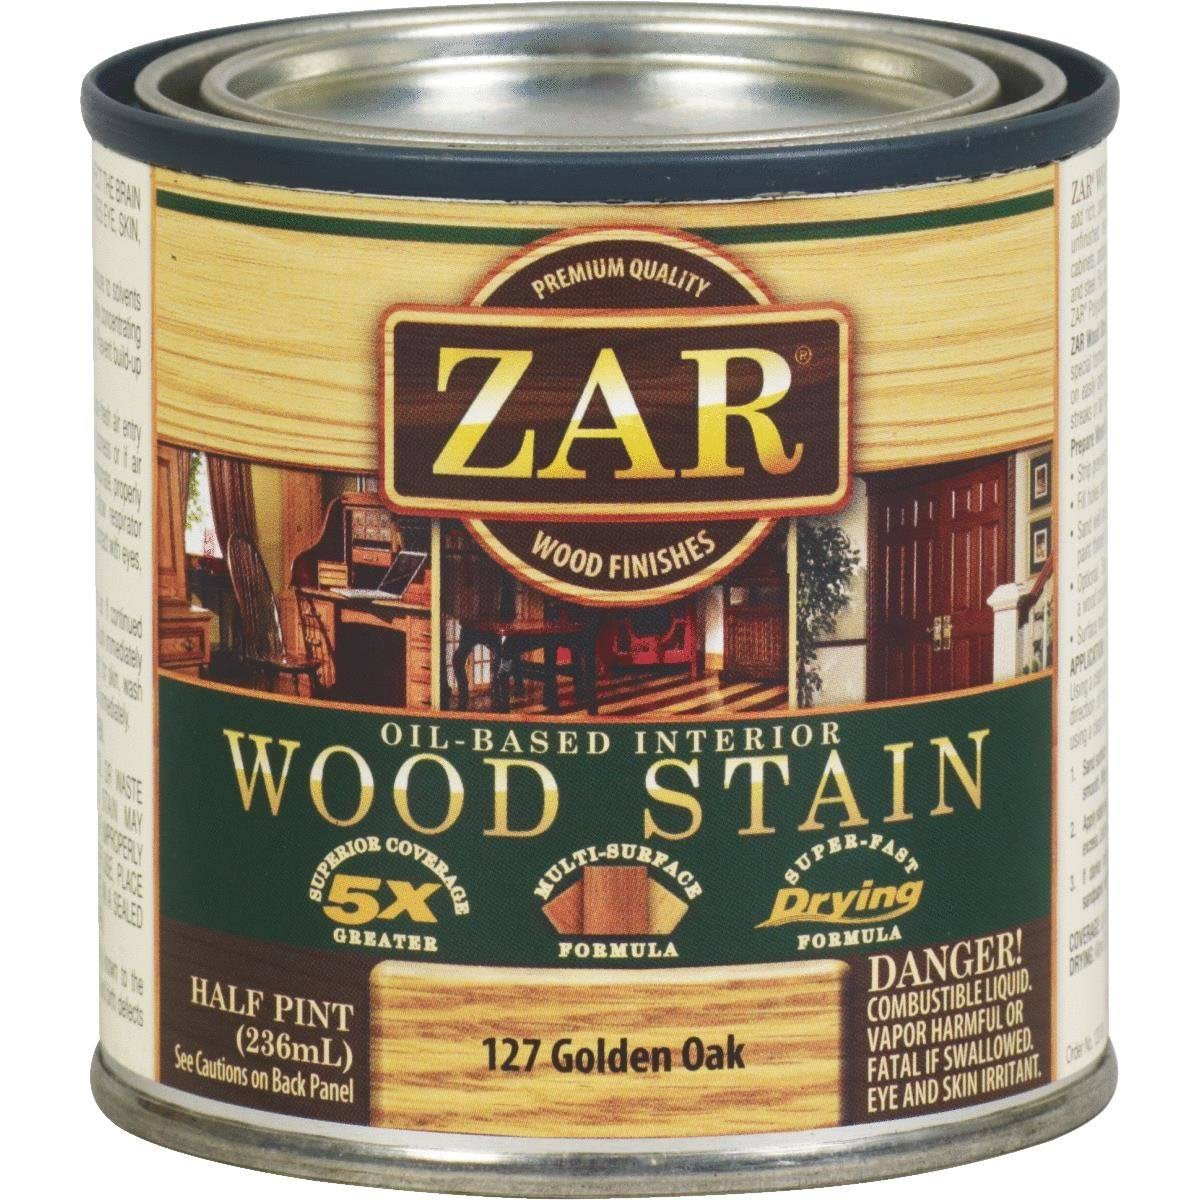 United Gilsonite Zar Oil Based Wood Stain - 127 Golden Oak